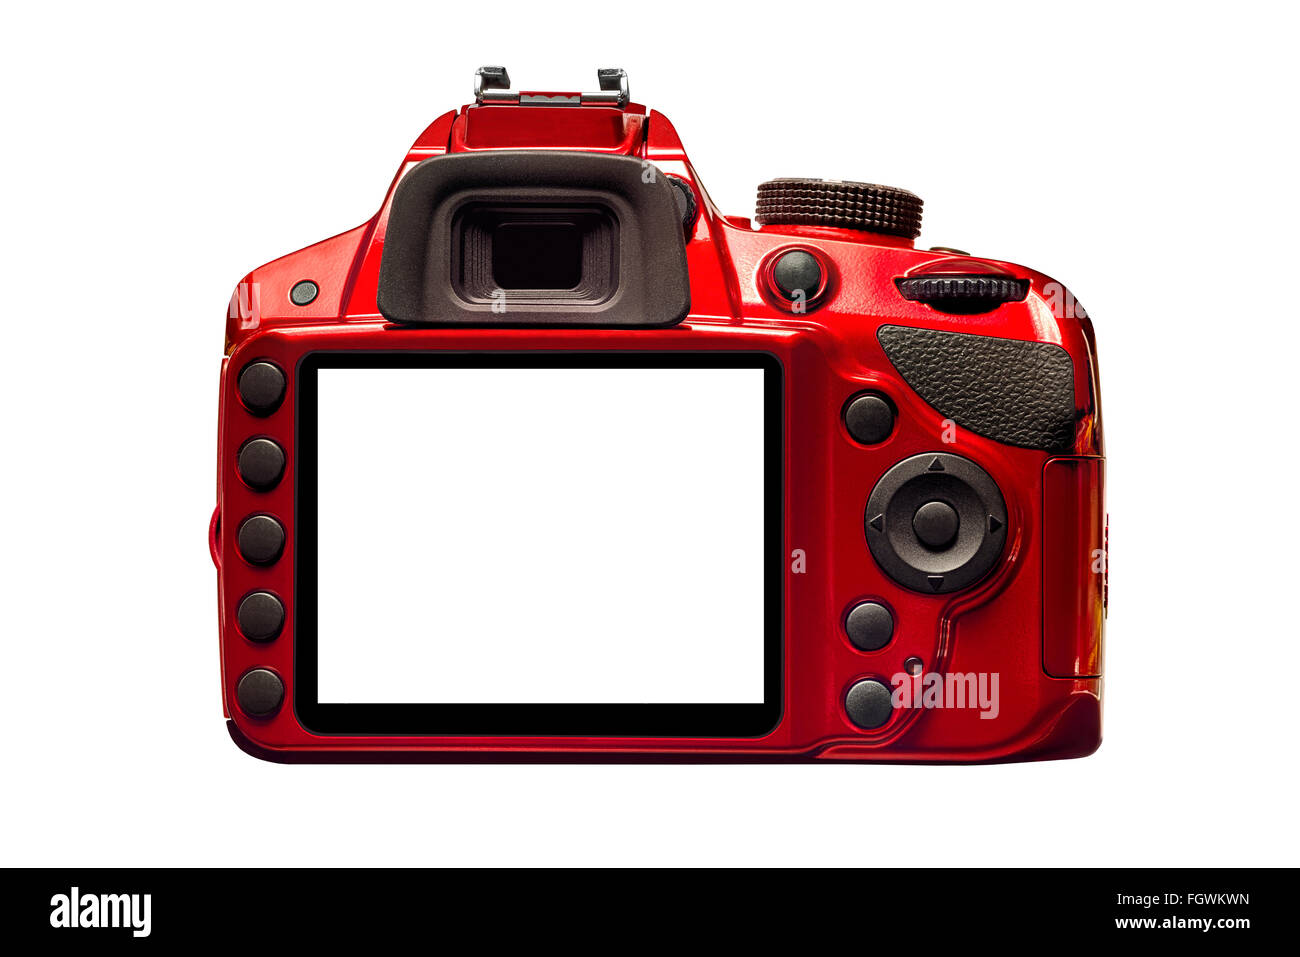 Red Camera Back With Blank Monitor - Stock Image